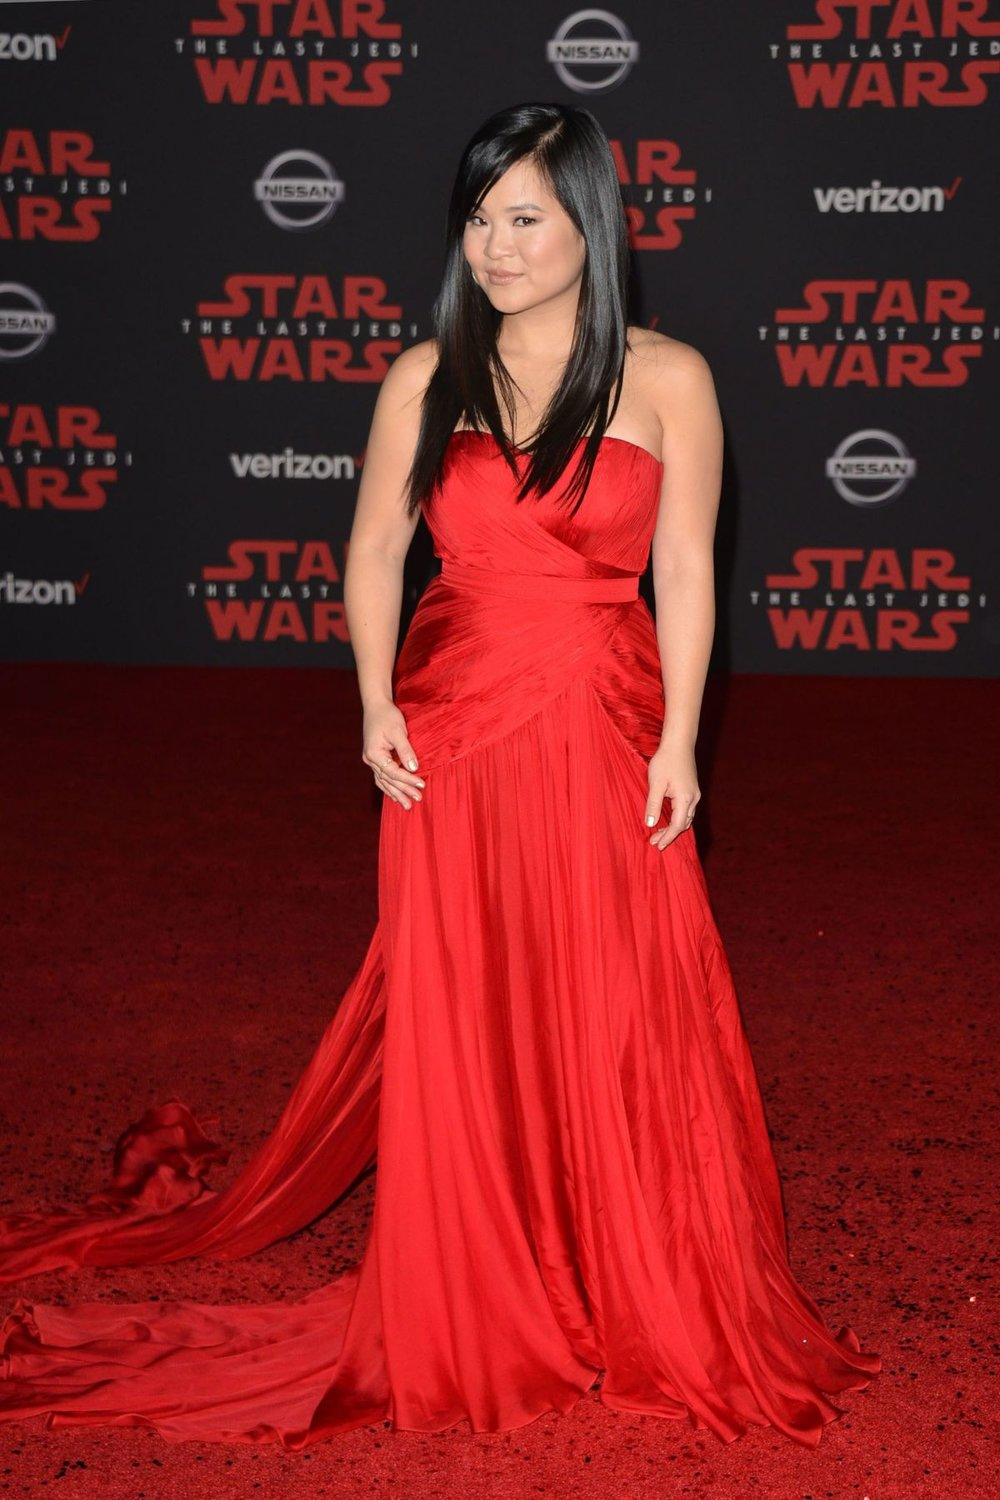 Kelly Marie Tran - Kelly is making her big-screen debut in a big way. Seen here being overwhelmed in a sweet moment with co-star Daisey Ridley, she wore this scarlett dress flowing behind her.